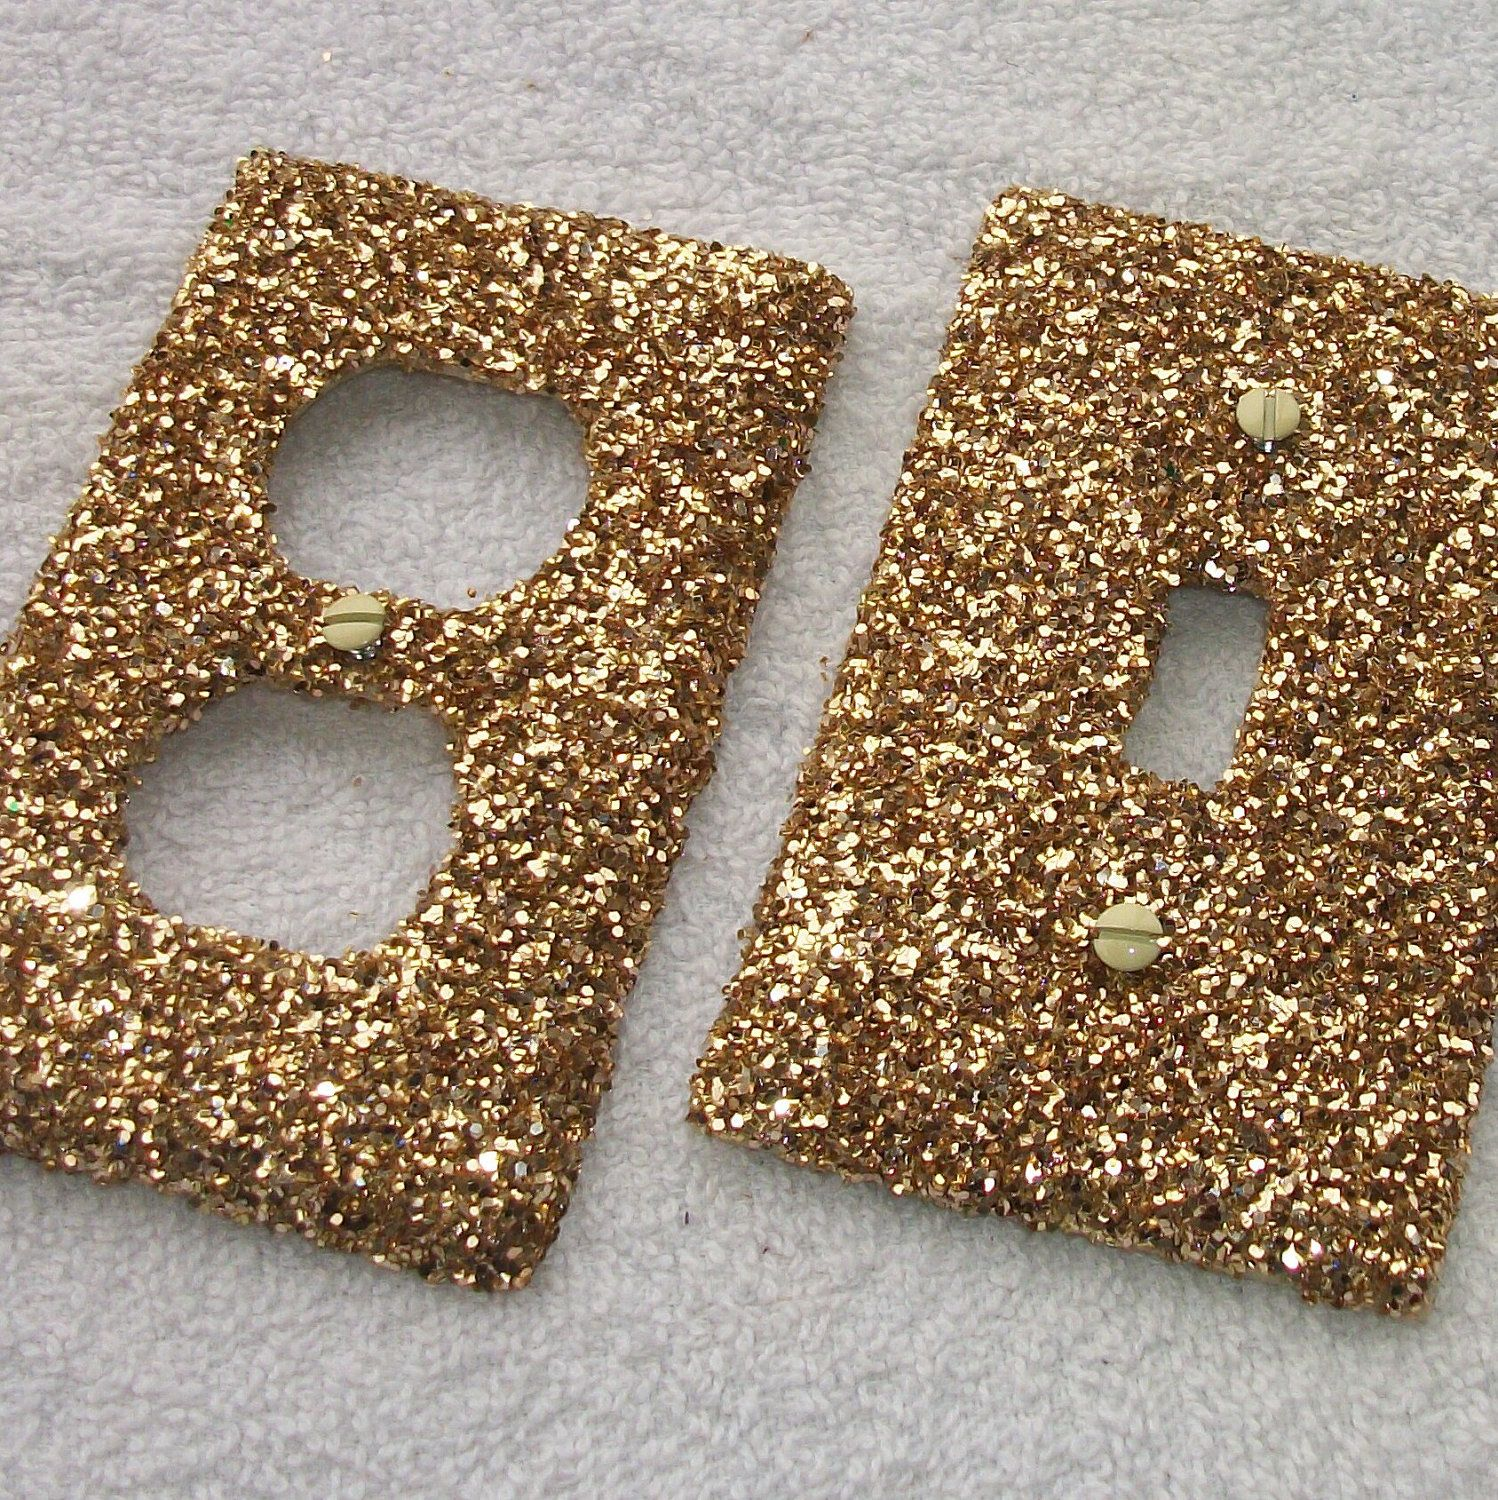 Gold Outlet Covers Glitter Light Switch And Outlet Covers  Salon  Pinterest